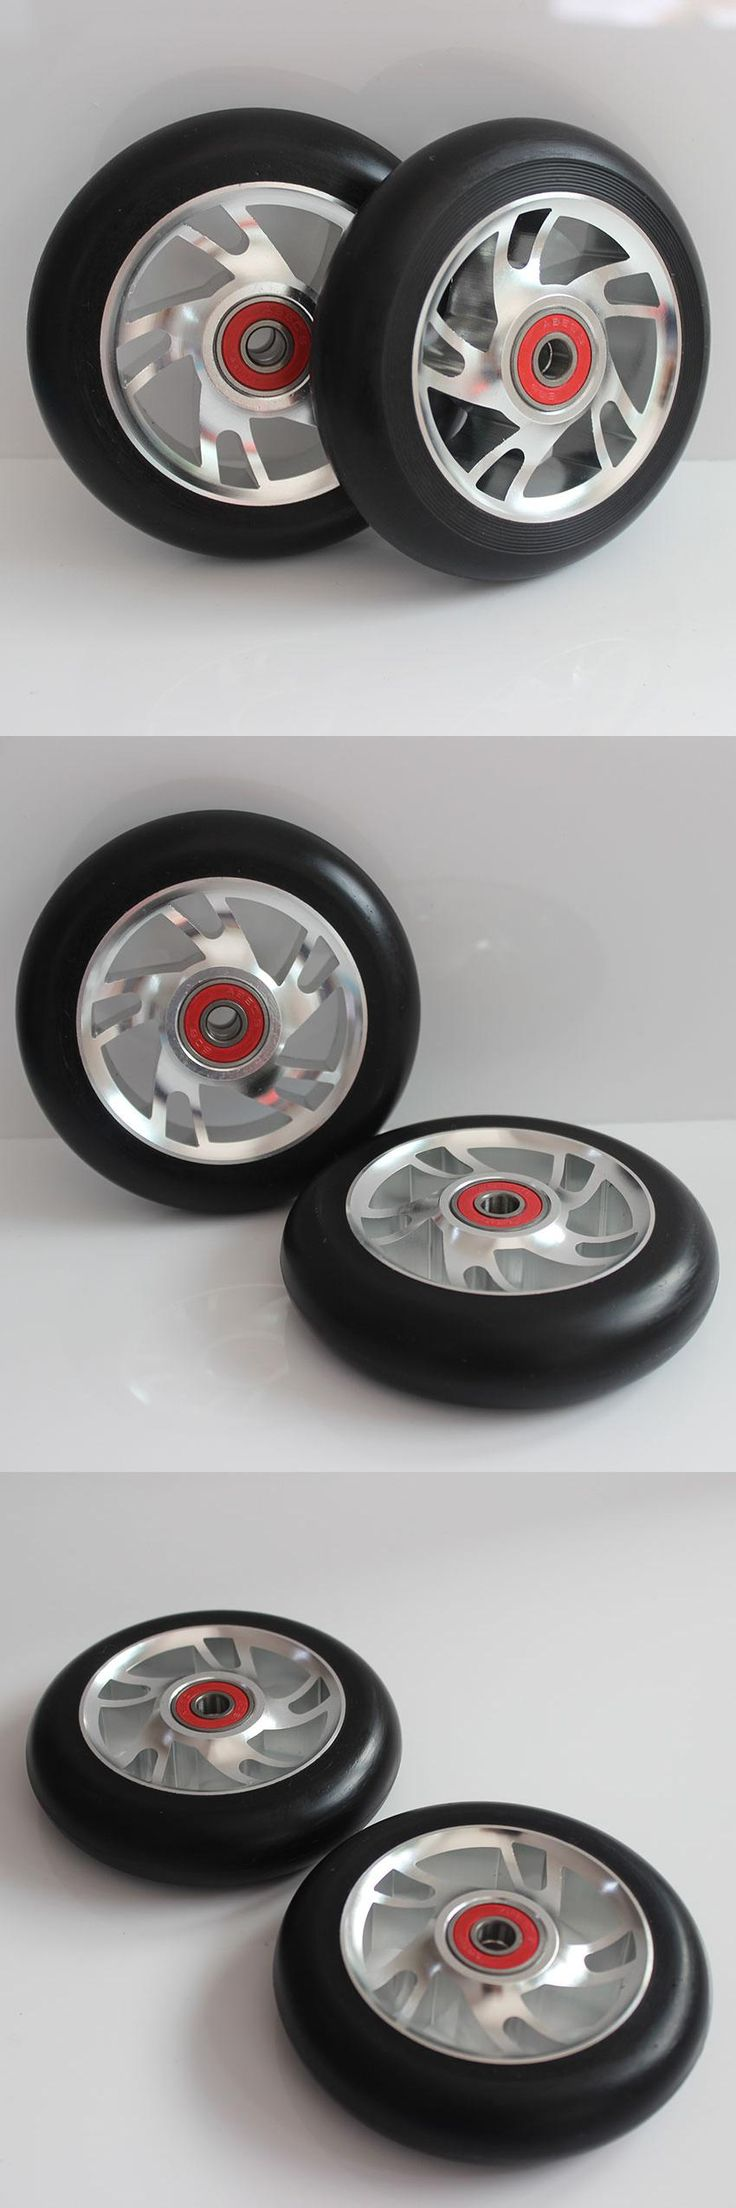 [Visit to Buy] Free shipping! Stunt scooter wheels / aluminum alloy wheels scooter sales 2PCS #Advertisement